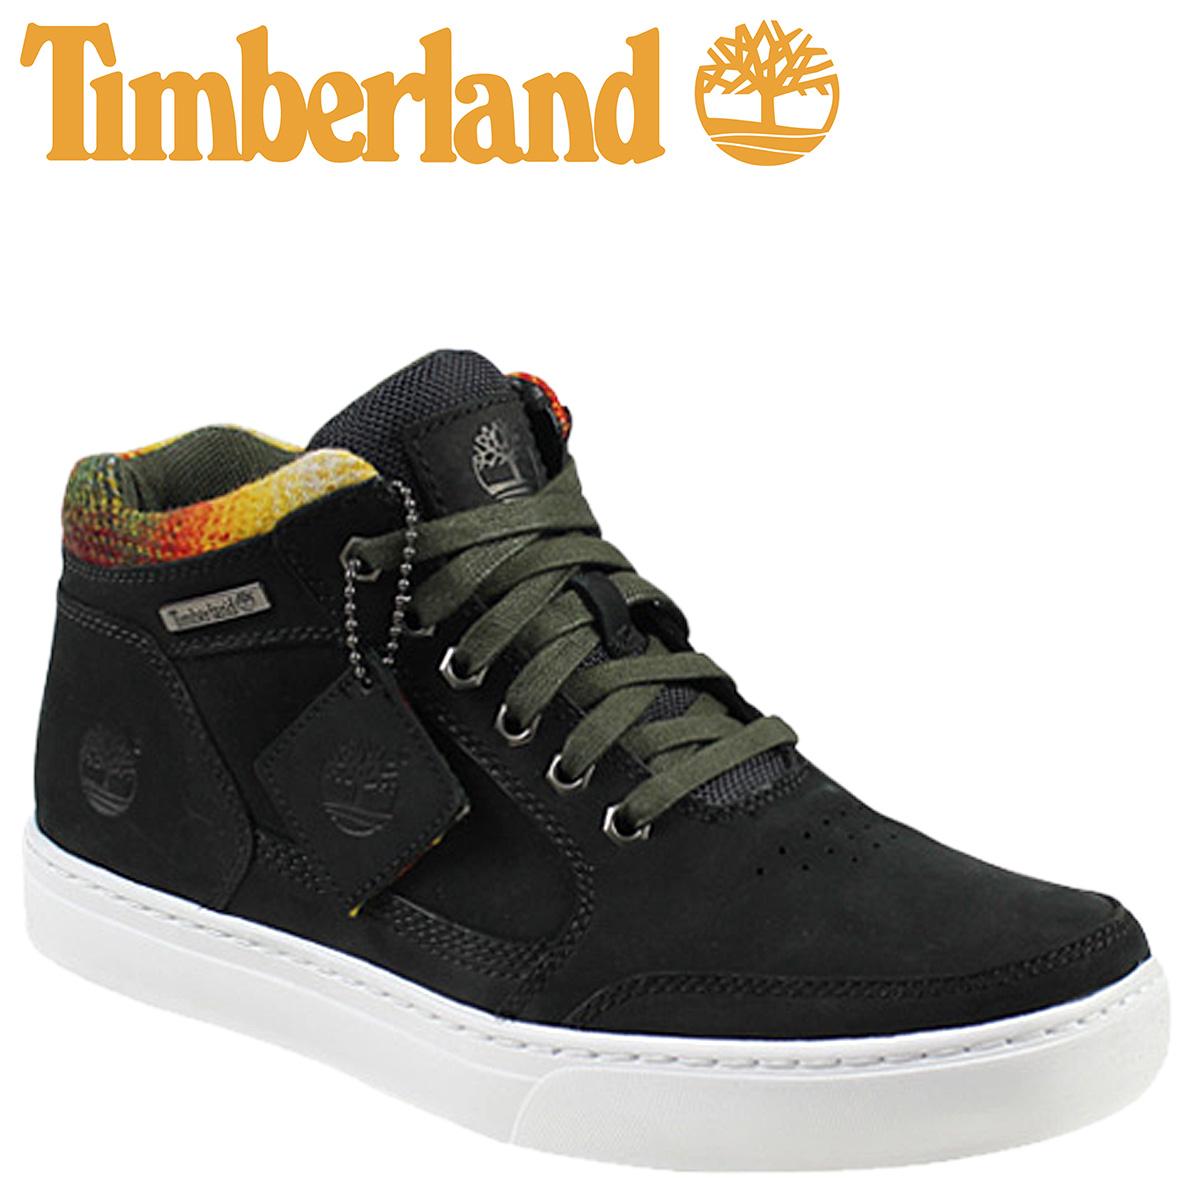 Timberland Timberland Earthkeepers cupsole 2.0 merge chukka boots EK 2.0  CUPSOLE MERGE CHUKKA nubuck 6169B black  3   24 new in stock   regular  d6cf8afc3599